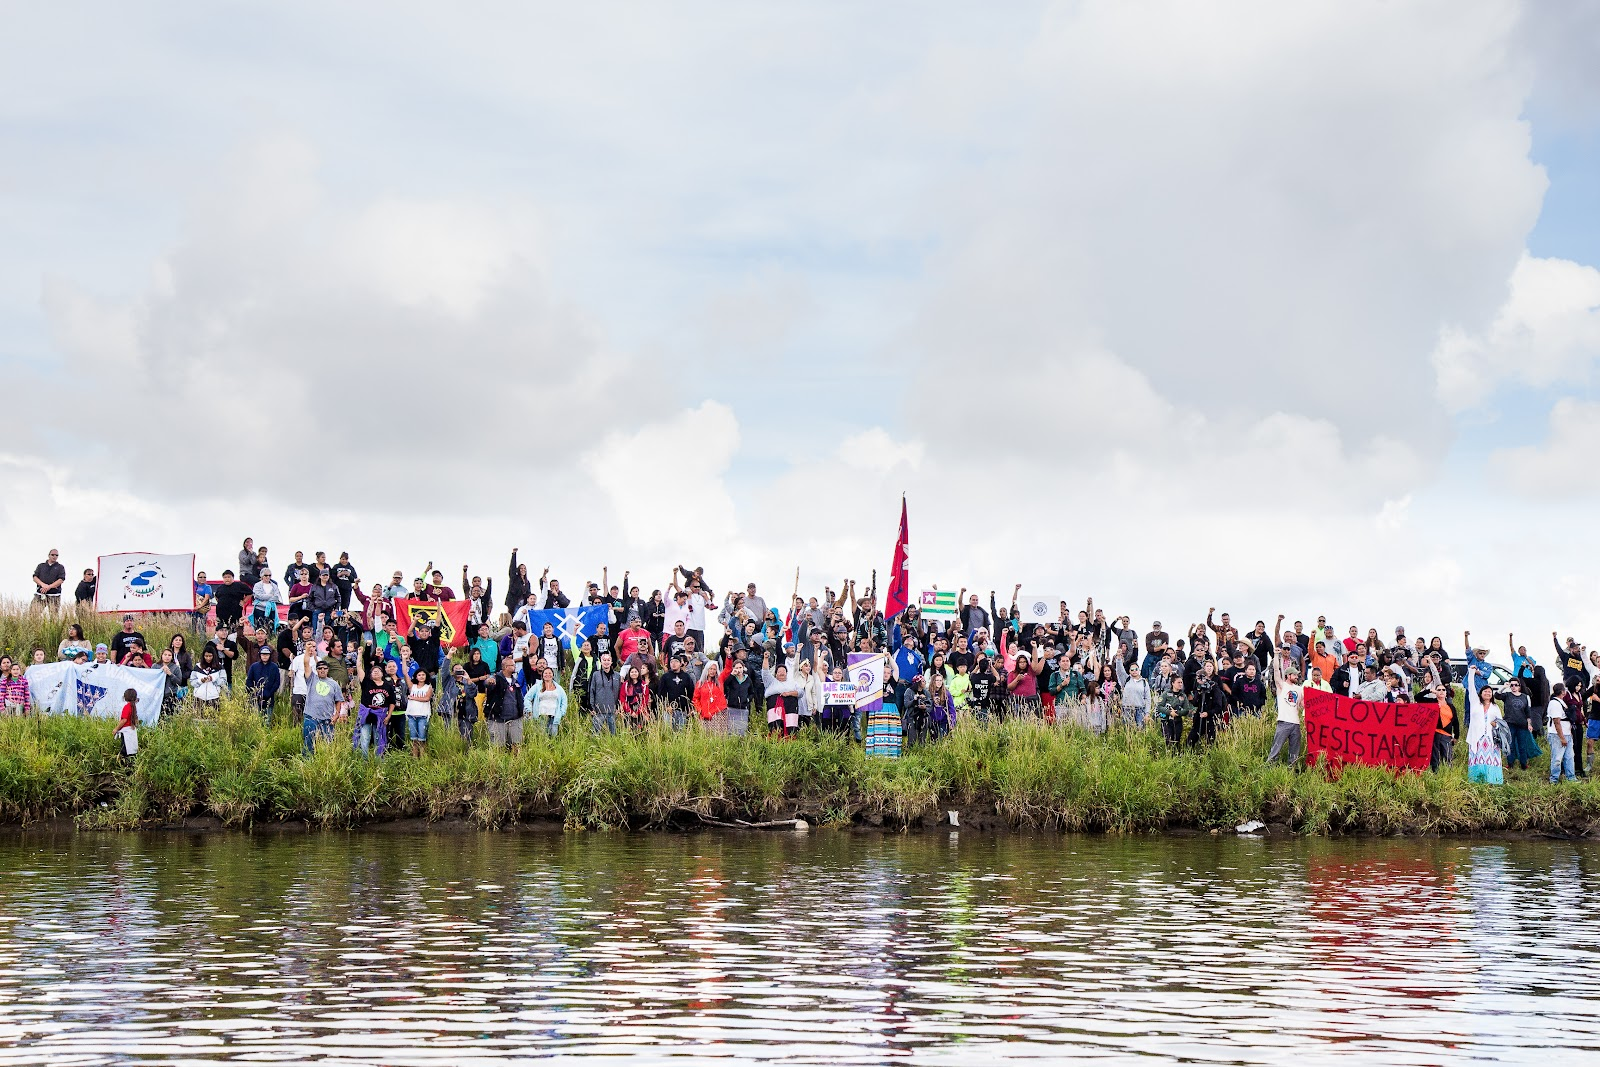 Onkwehone, Real People, stand along the river in support of clean water for all people. (Photo: Alex Hamer)